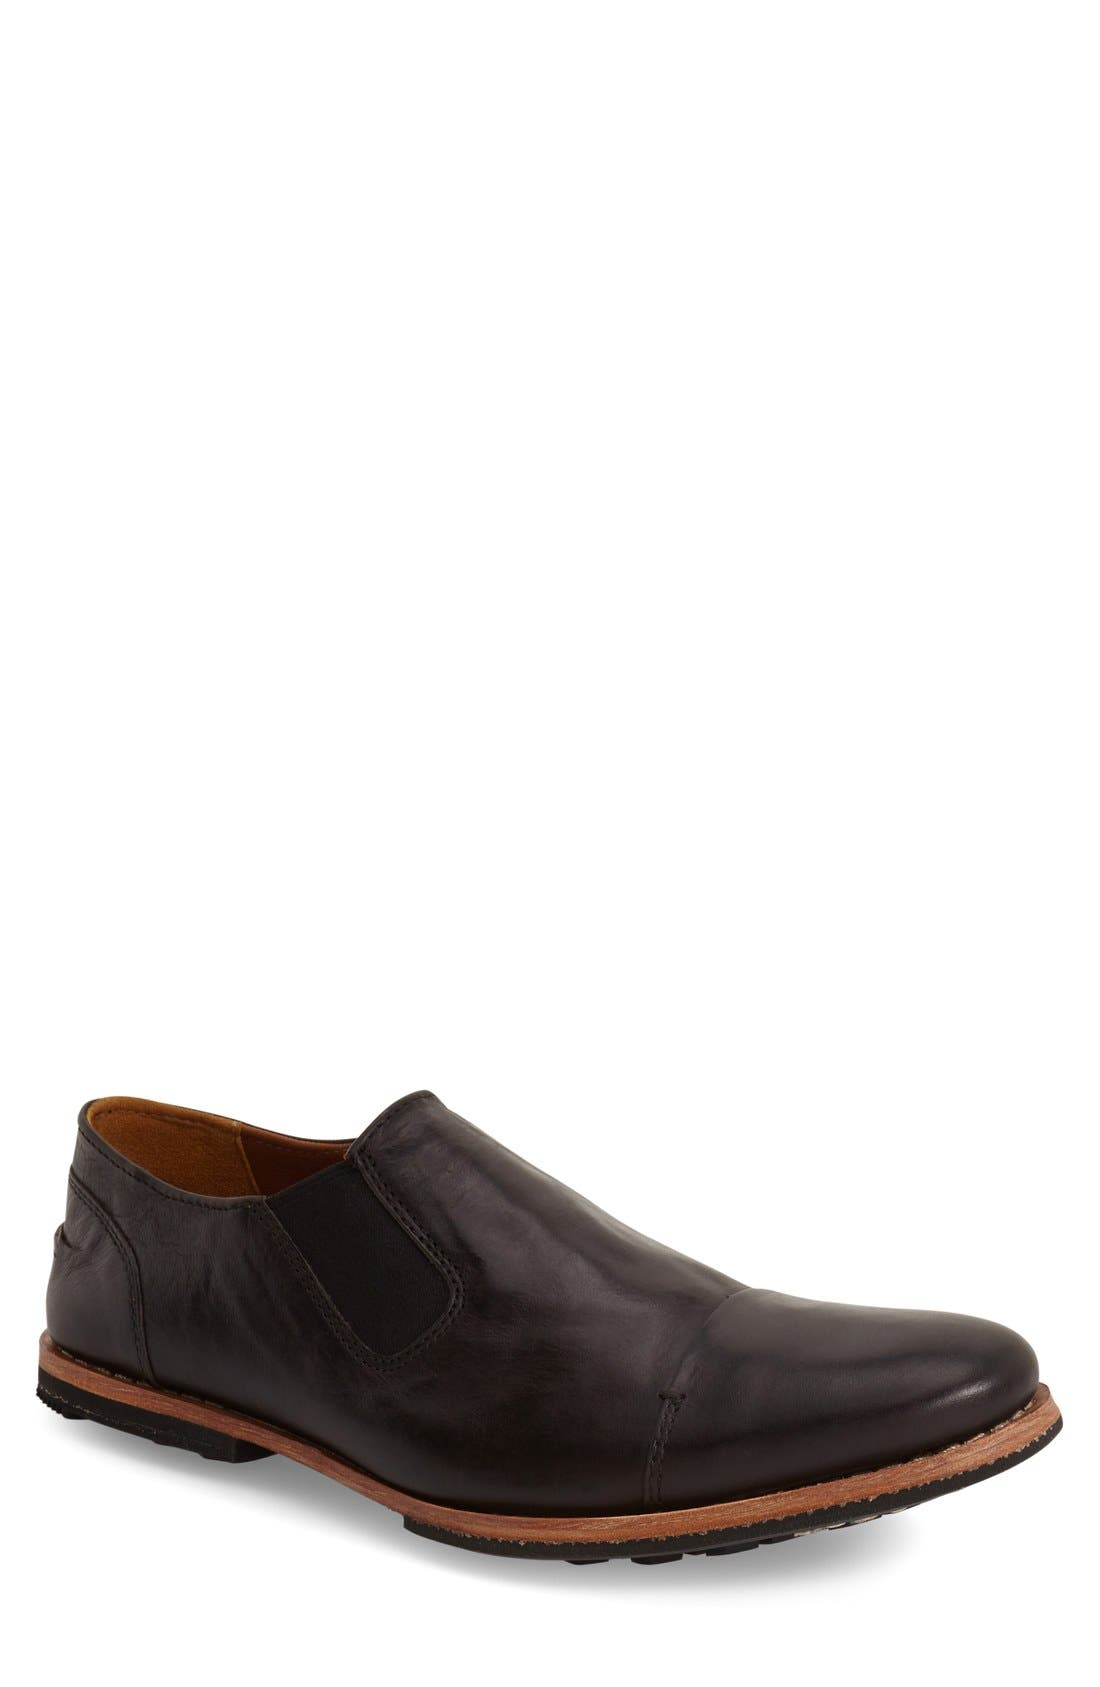 Main Image - Timberland 'Lost History' Venetian Loafer (Men)